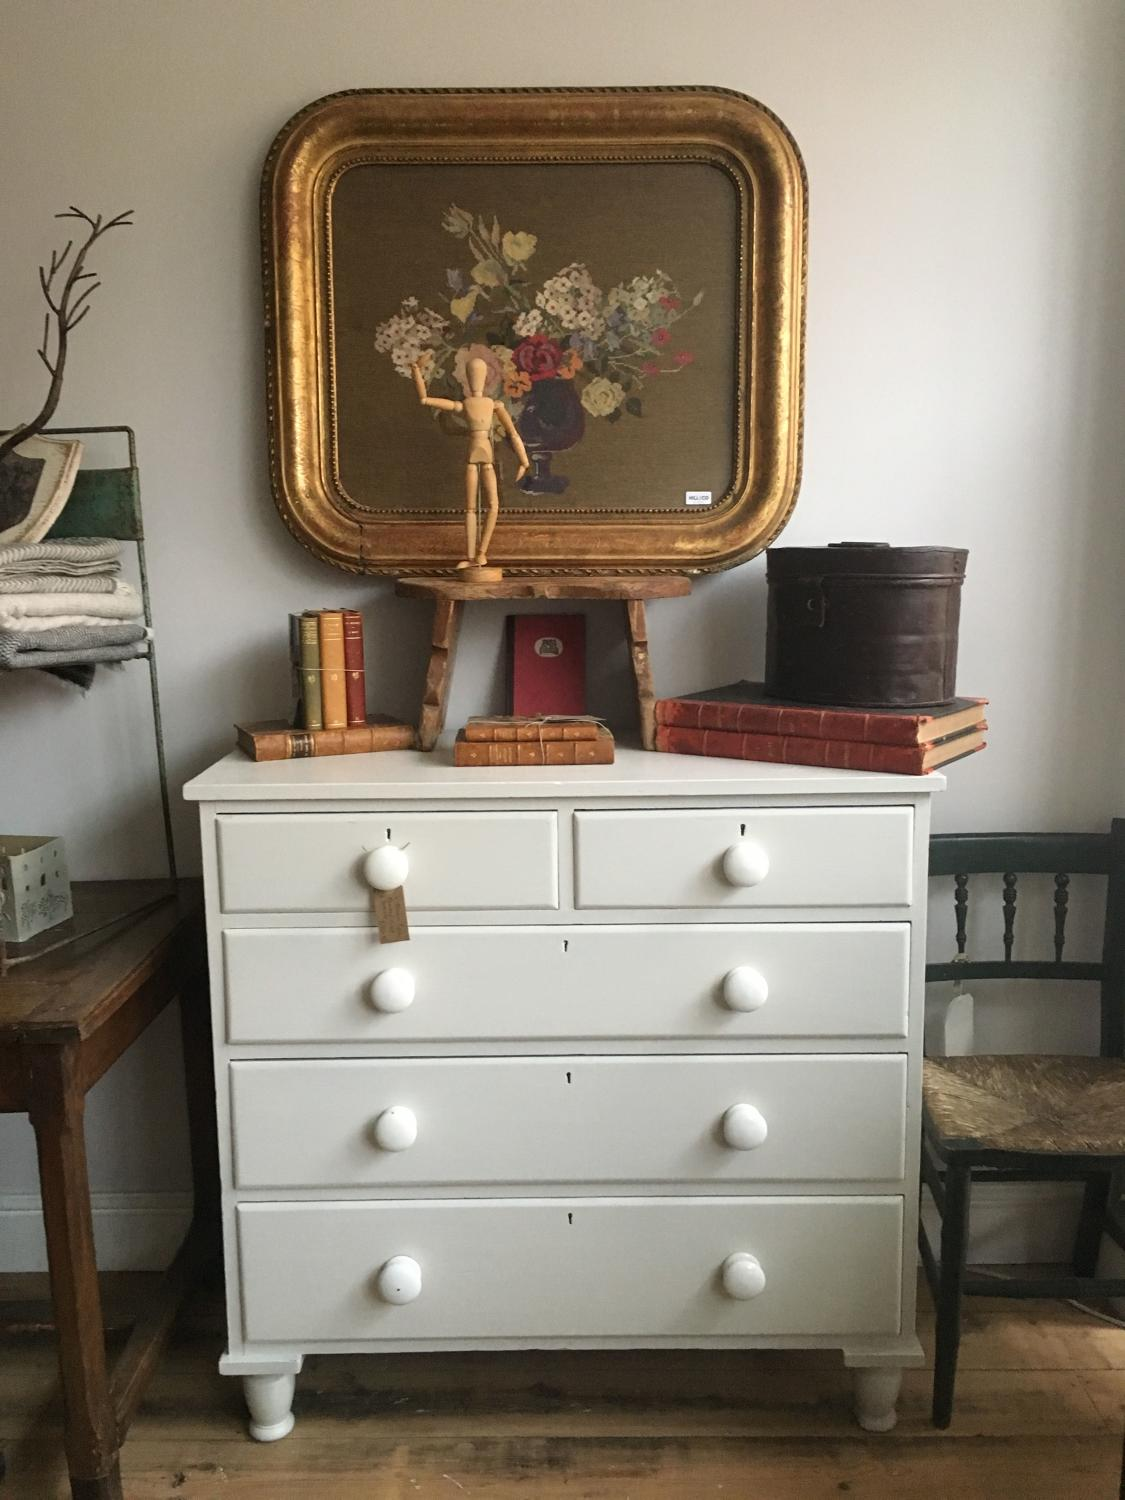 Victorian painted pine Chest of Drawers with original porcelain knobs